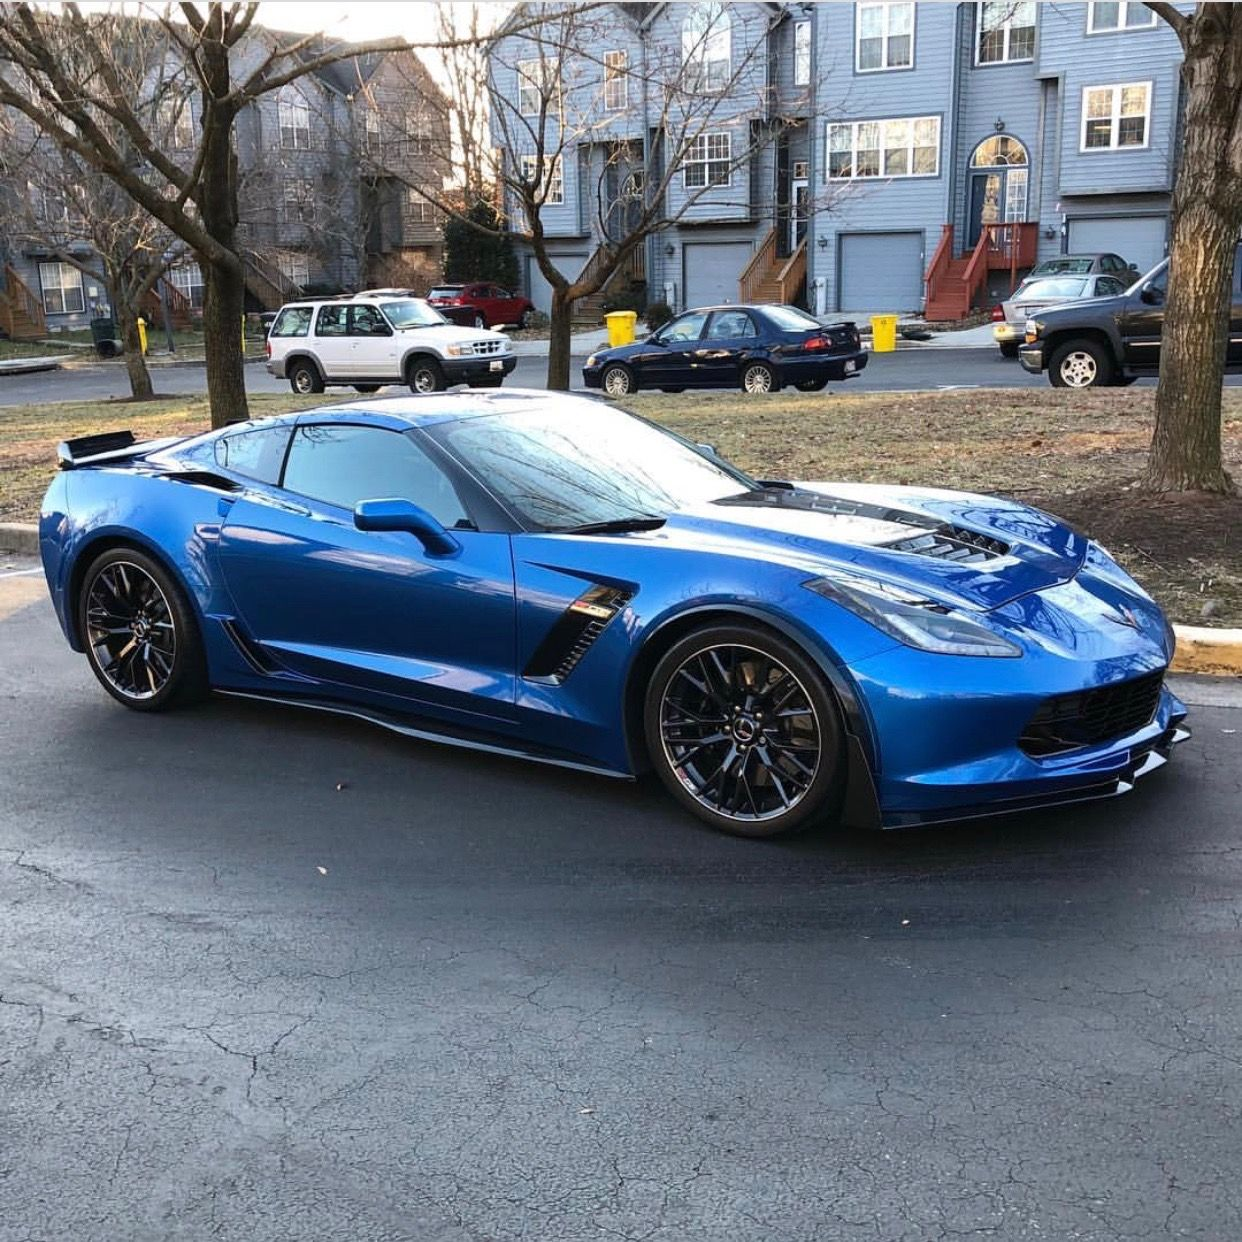 Chevrolet Corvette C7 Z06 Painted In Laguna Blue Photo Taken By